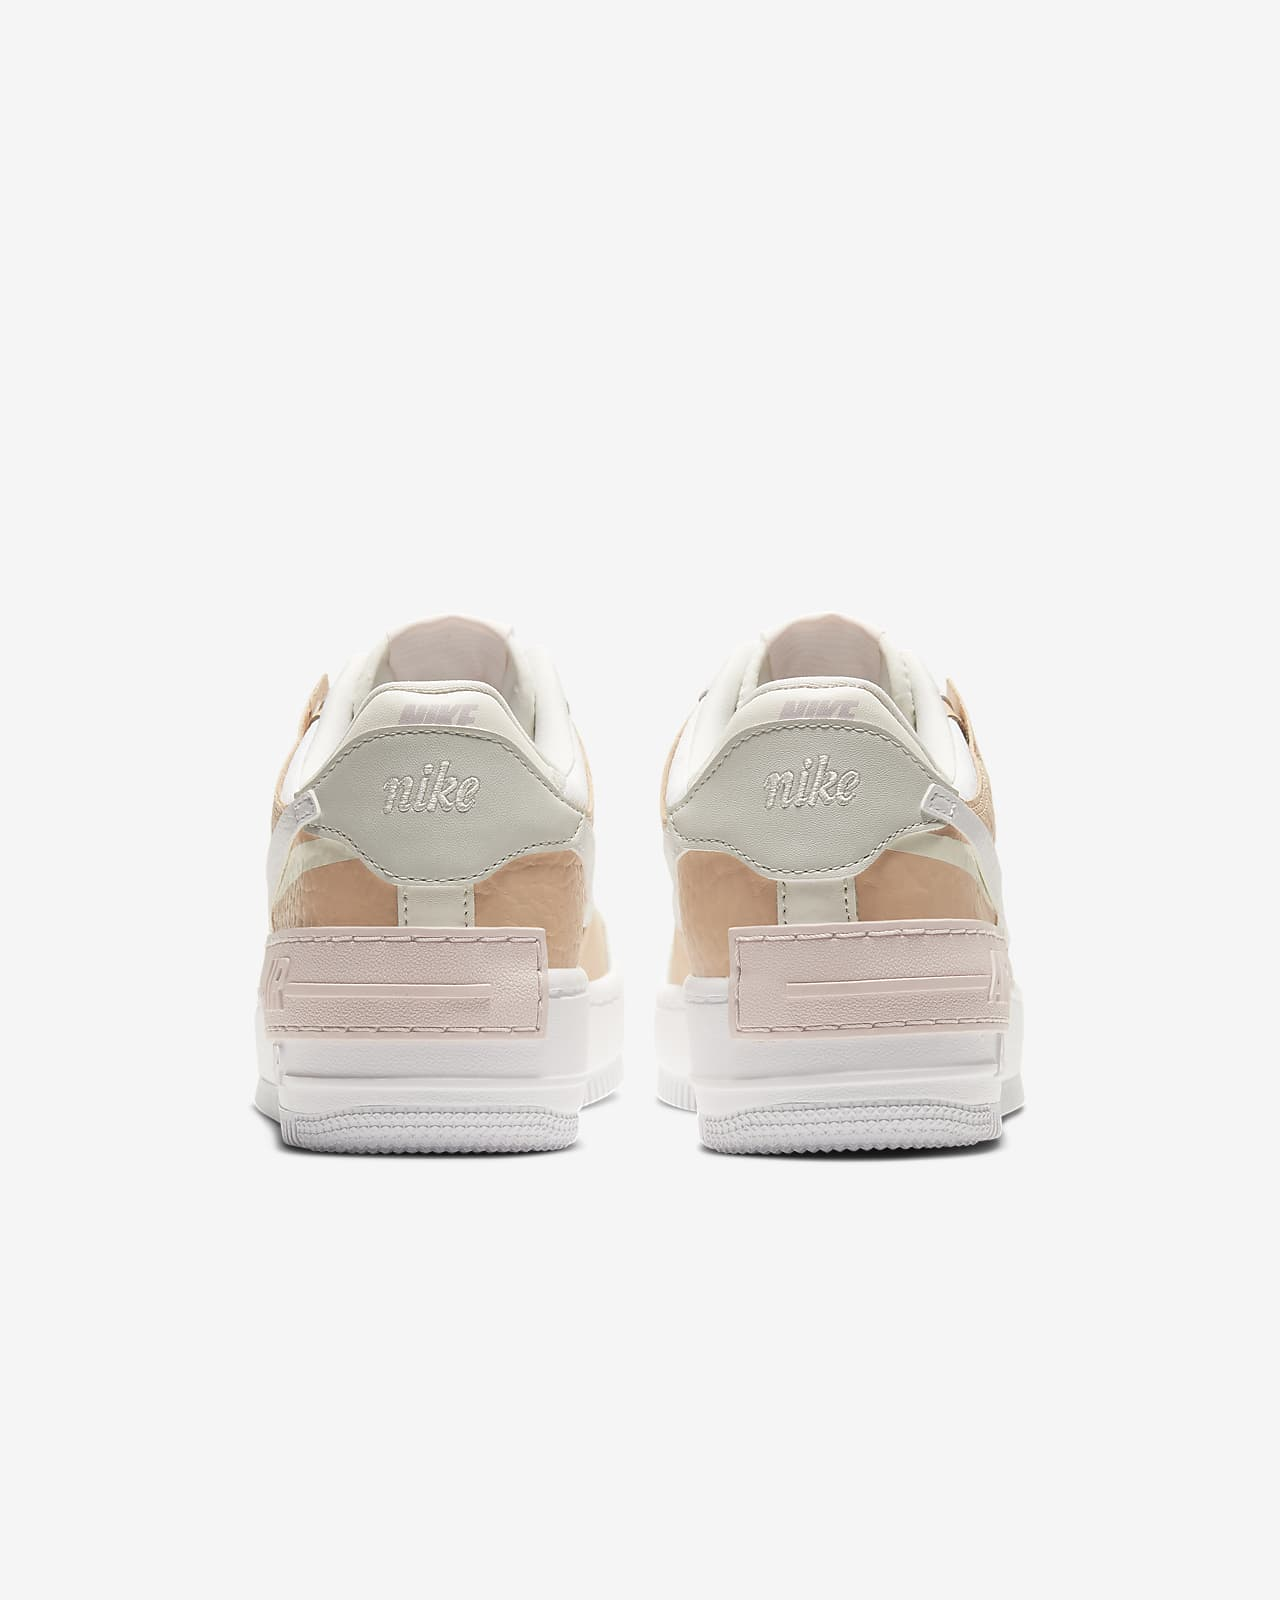 Nike Air Force 1 Shadow Se Women S Shoe Nike Id This allows the website to find the best variation/edition of the site. nike air force 1 shadow se women s shoe